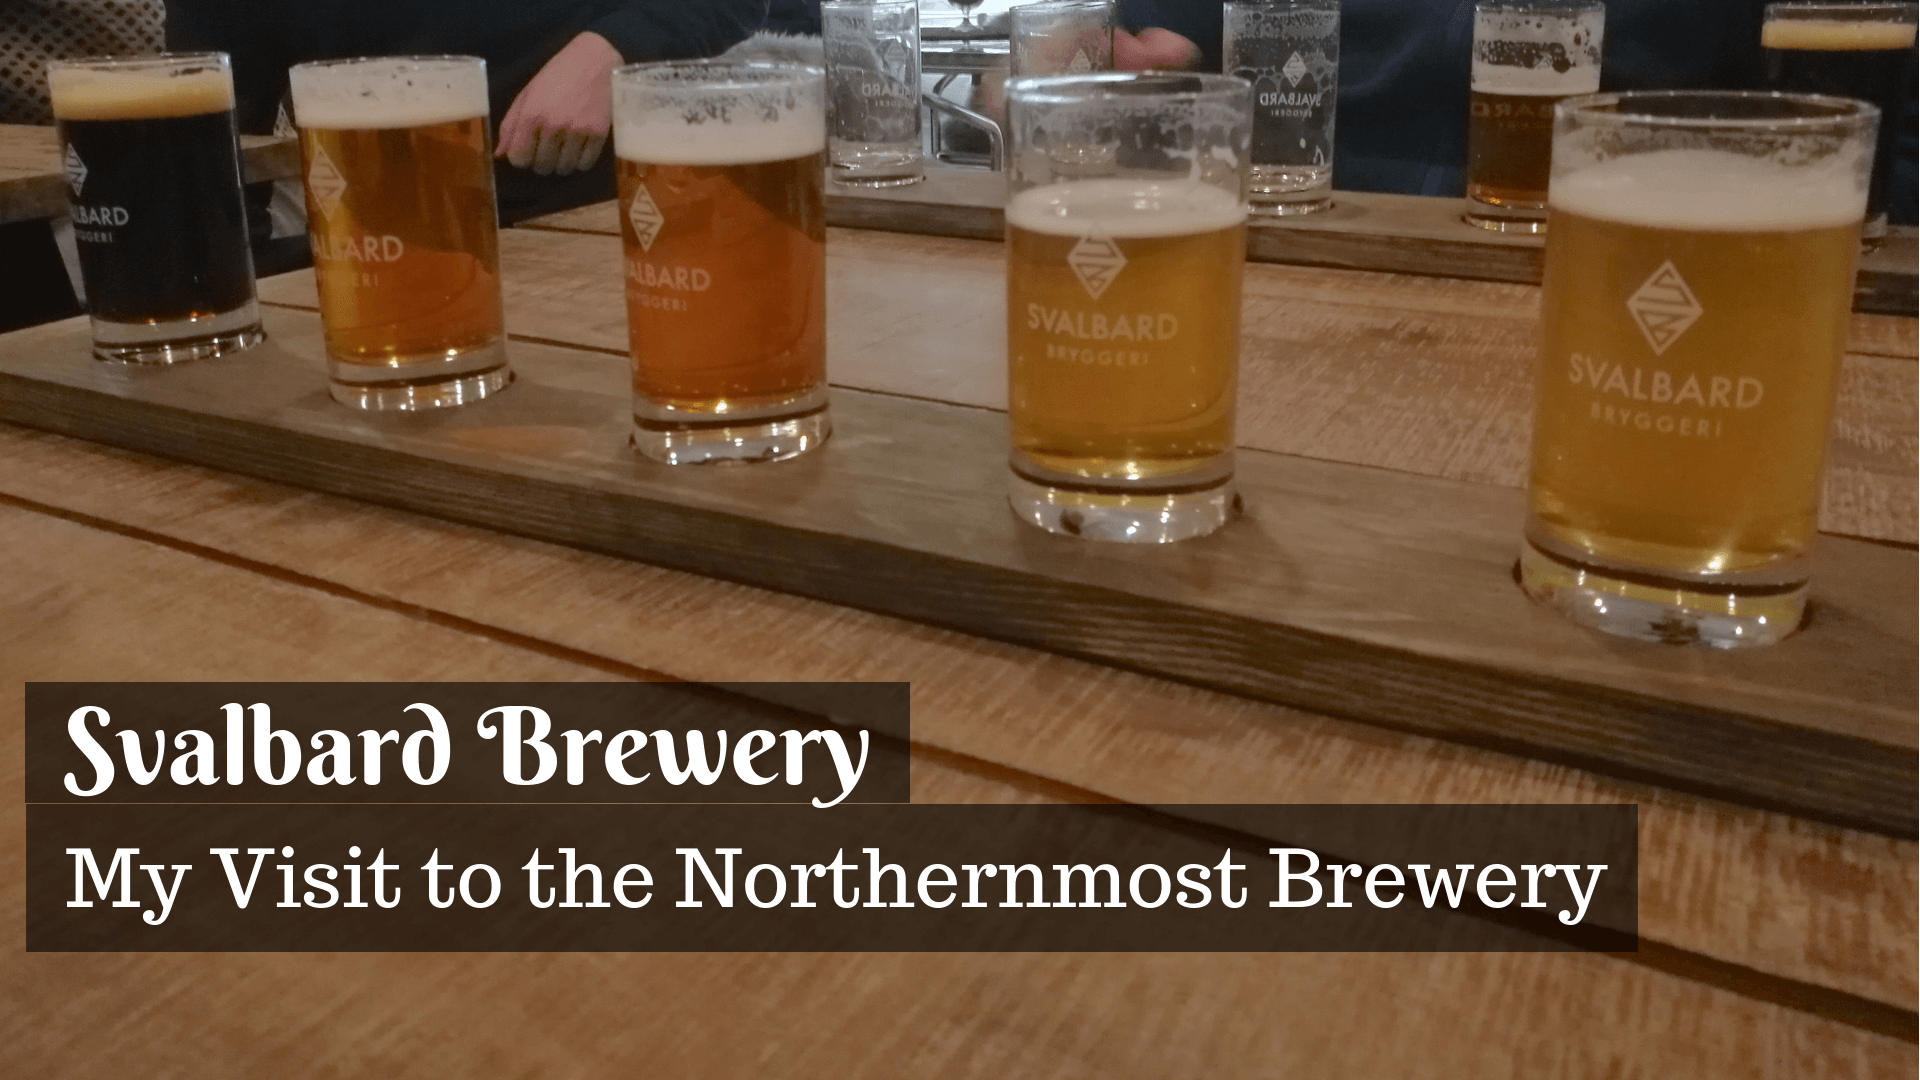 Did you know the world's northernmost brewery is in Svalbard? The beer tour at Svalbard Brewery should be on every beer lovers bucket list!